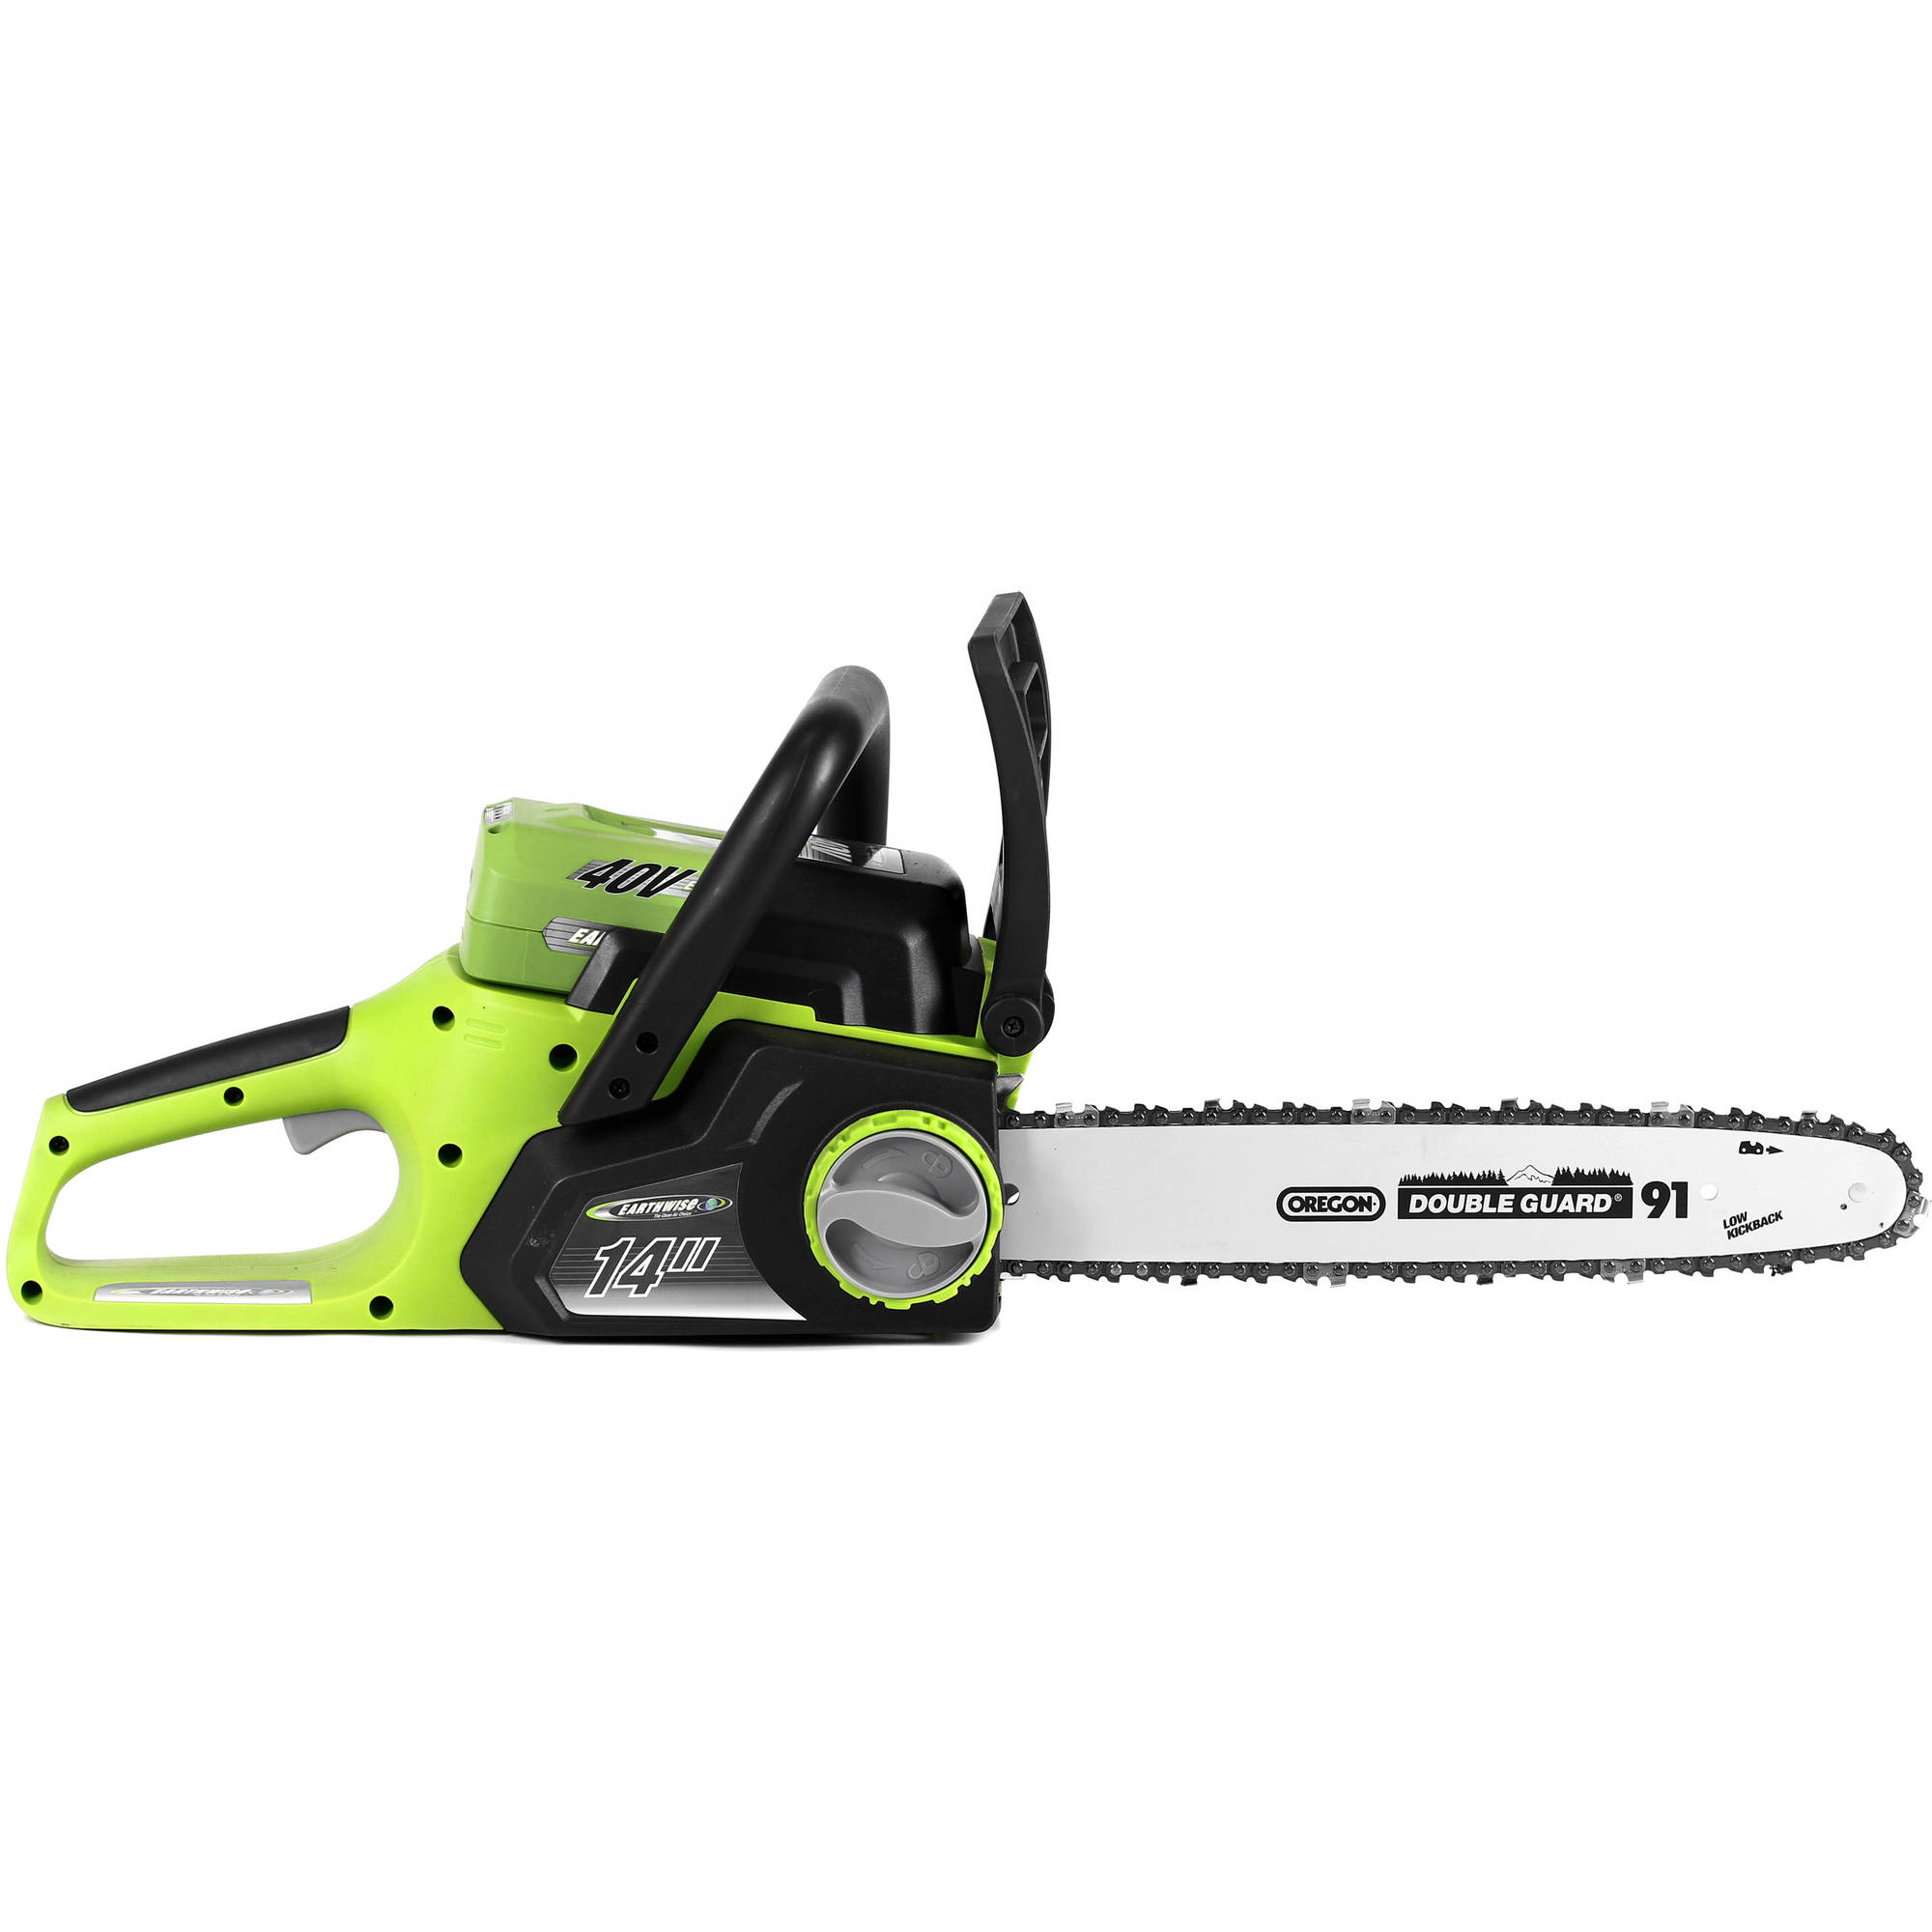 "Earthwise 40V Lithium Ion 2 Ah 14"" Chain Saw by Great States Corporation"